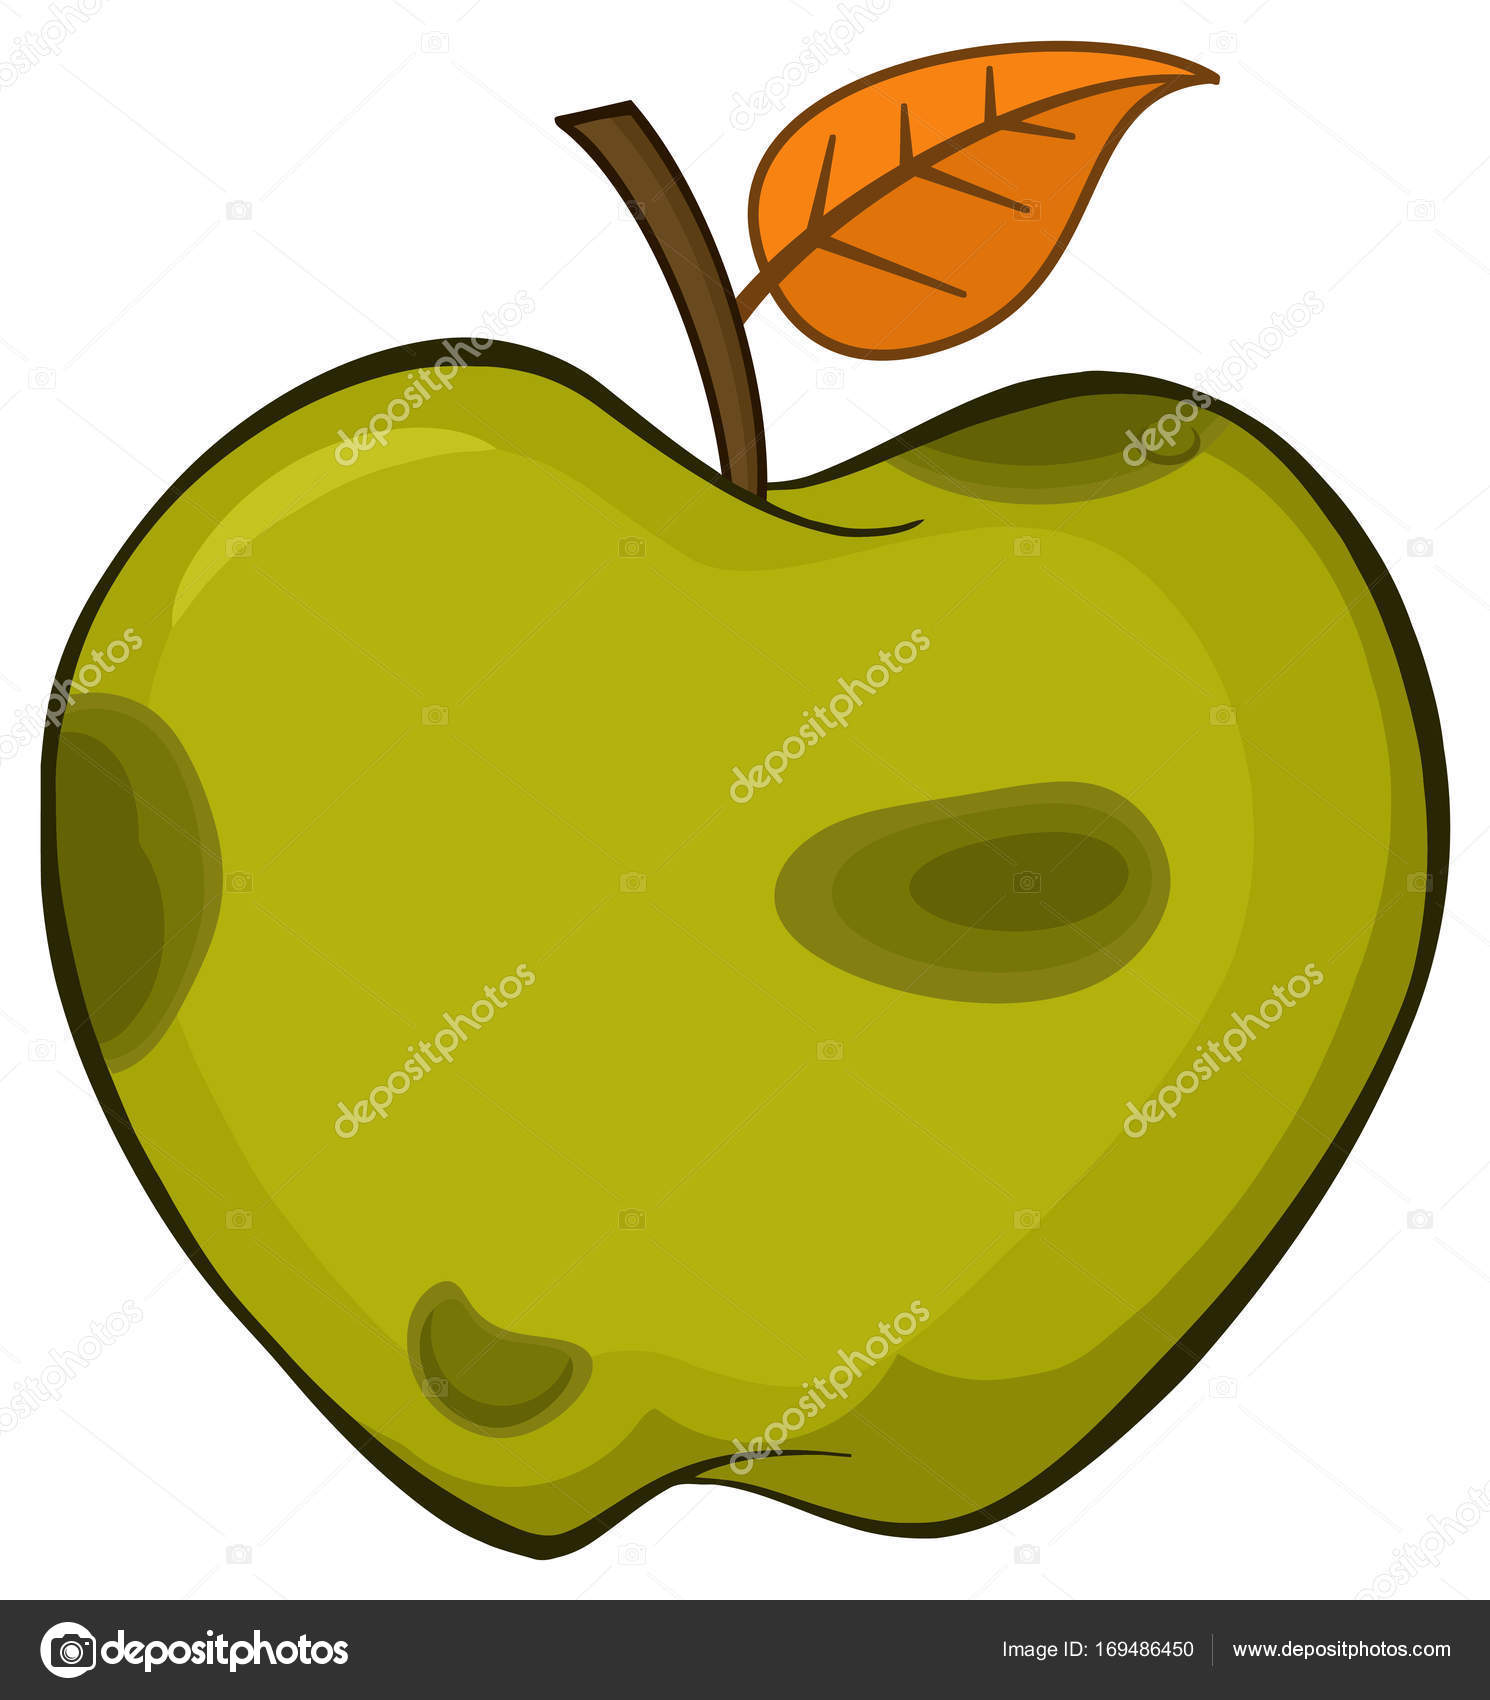 Simple Apple Drawing at GetDrawings.com | Free for personal use ...